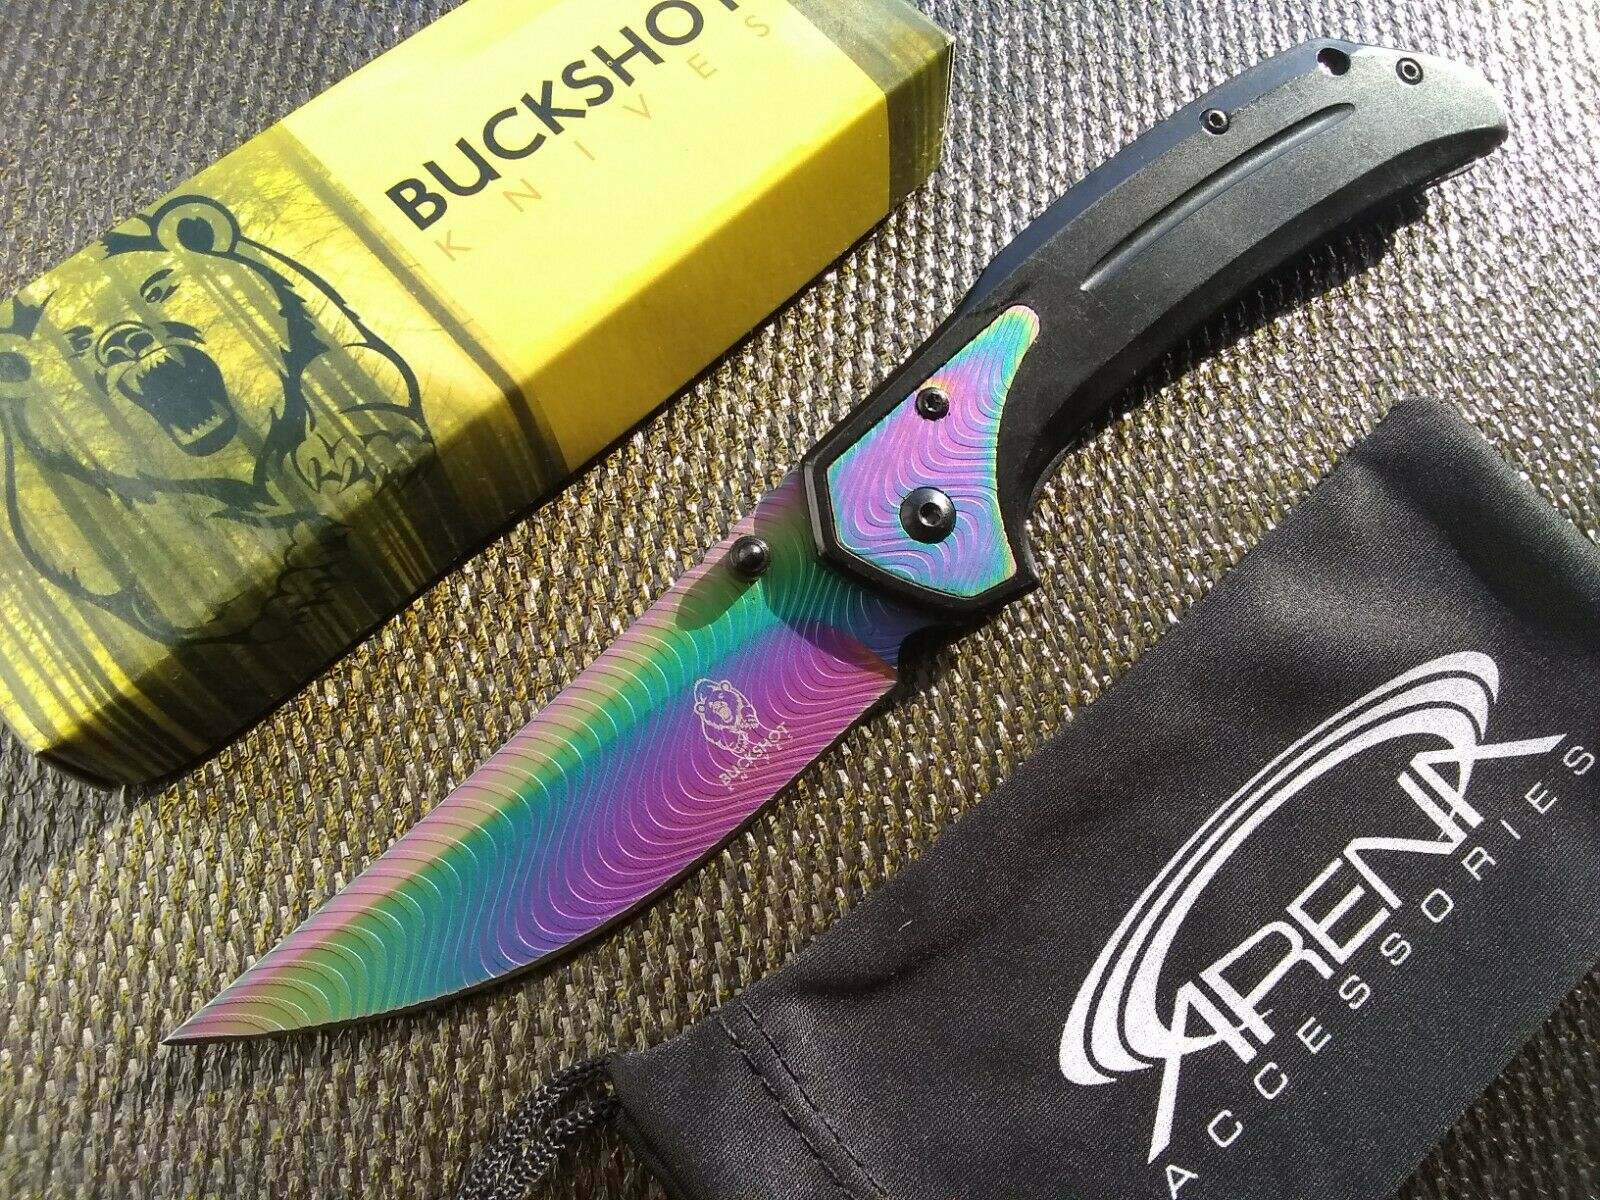 Upswept Curved Blade FrameLock Pocket Knife w/Deep-Carry Clip Rainbow EDC